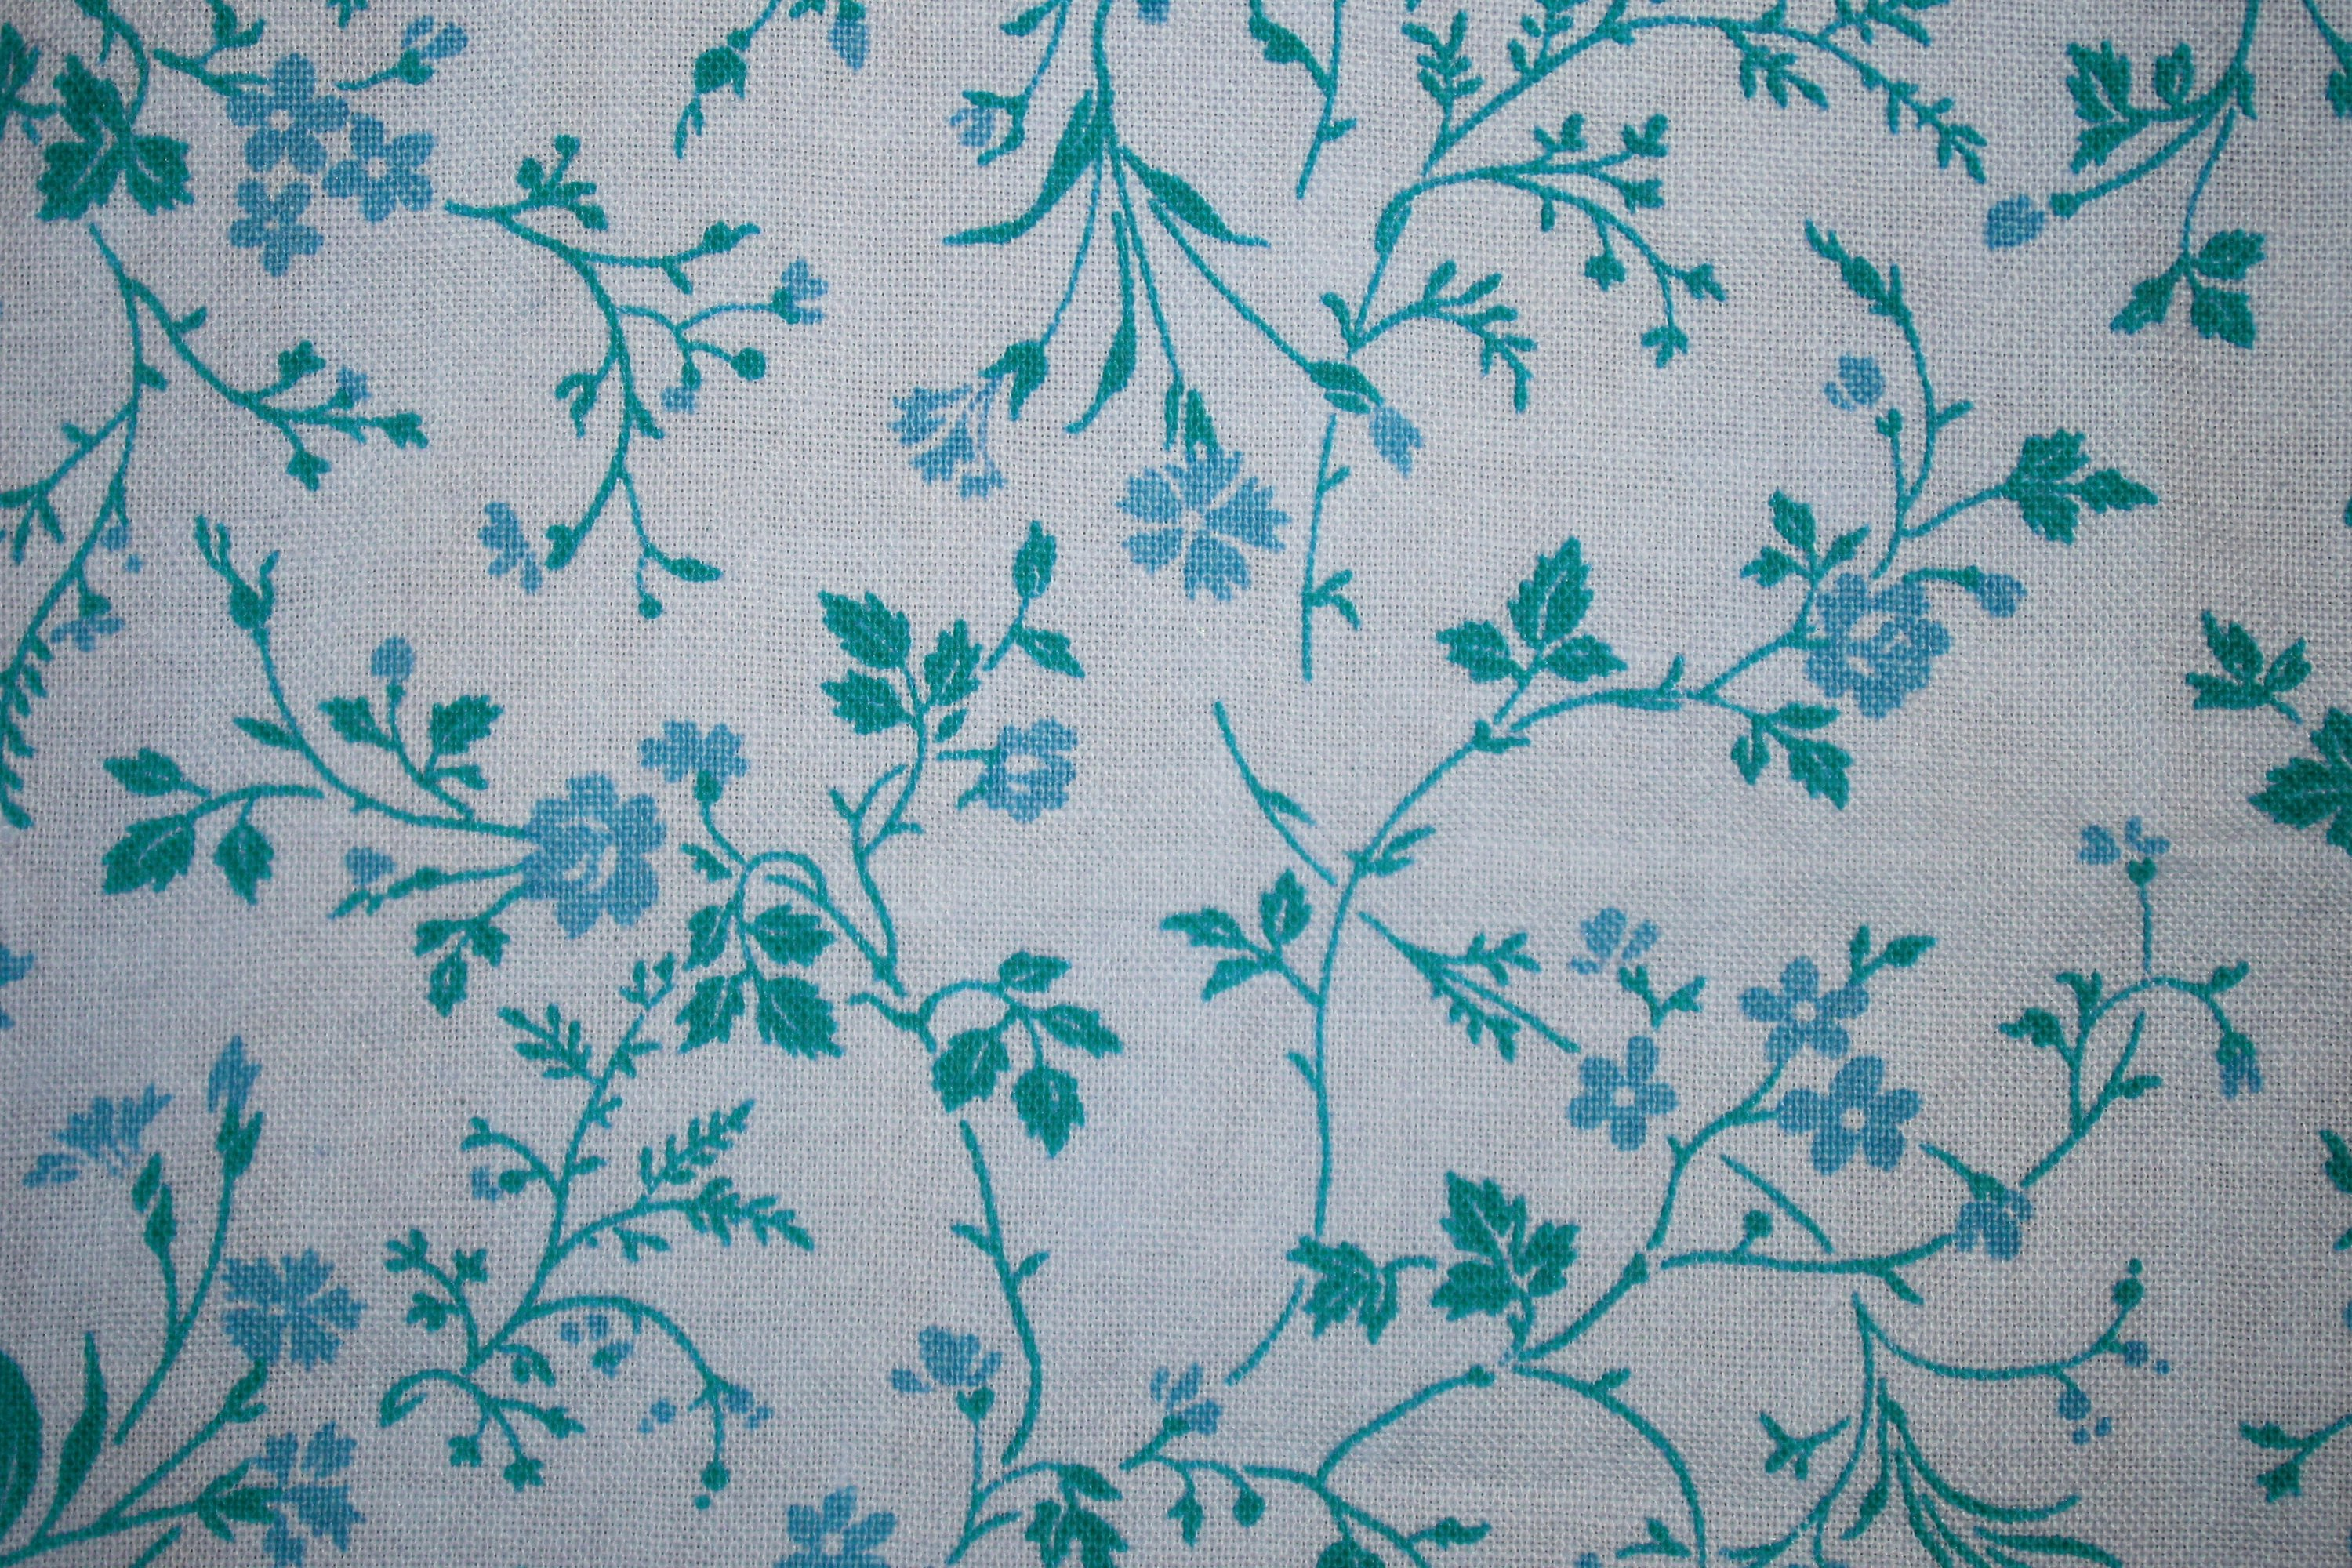 Teal On White Fl Print Fabric Texture